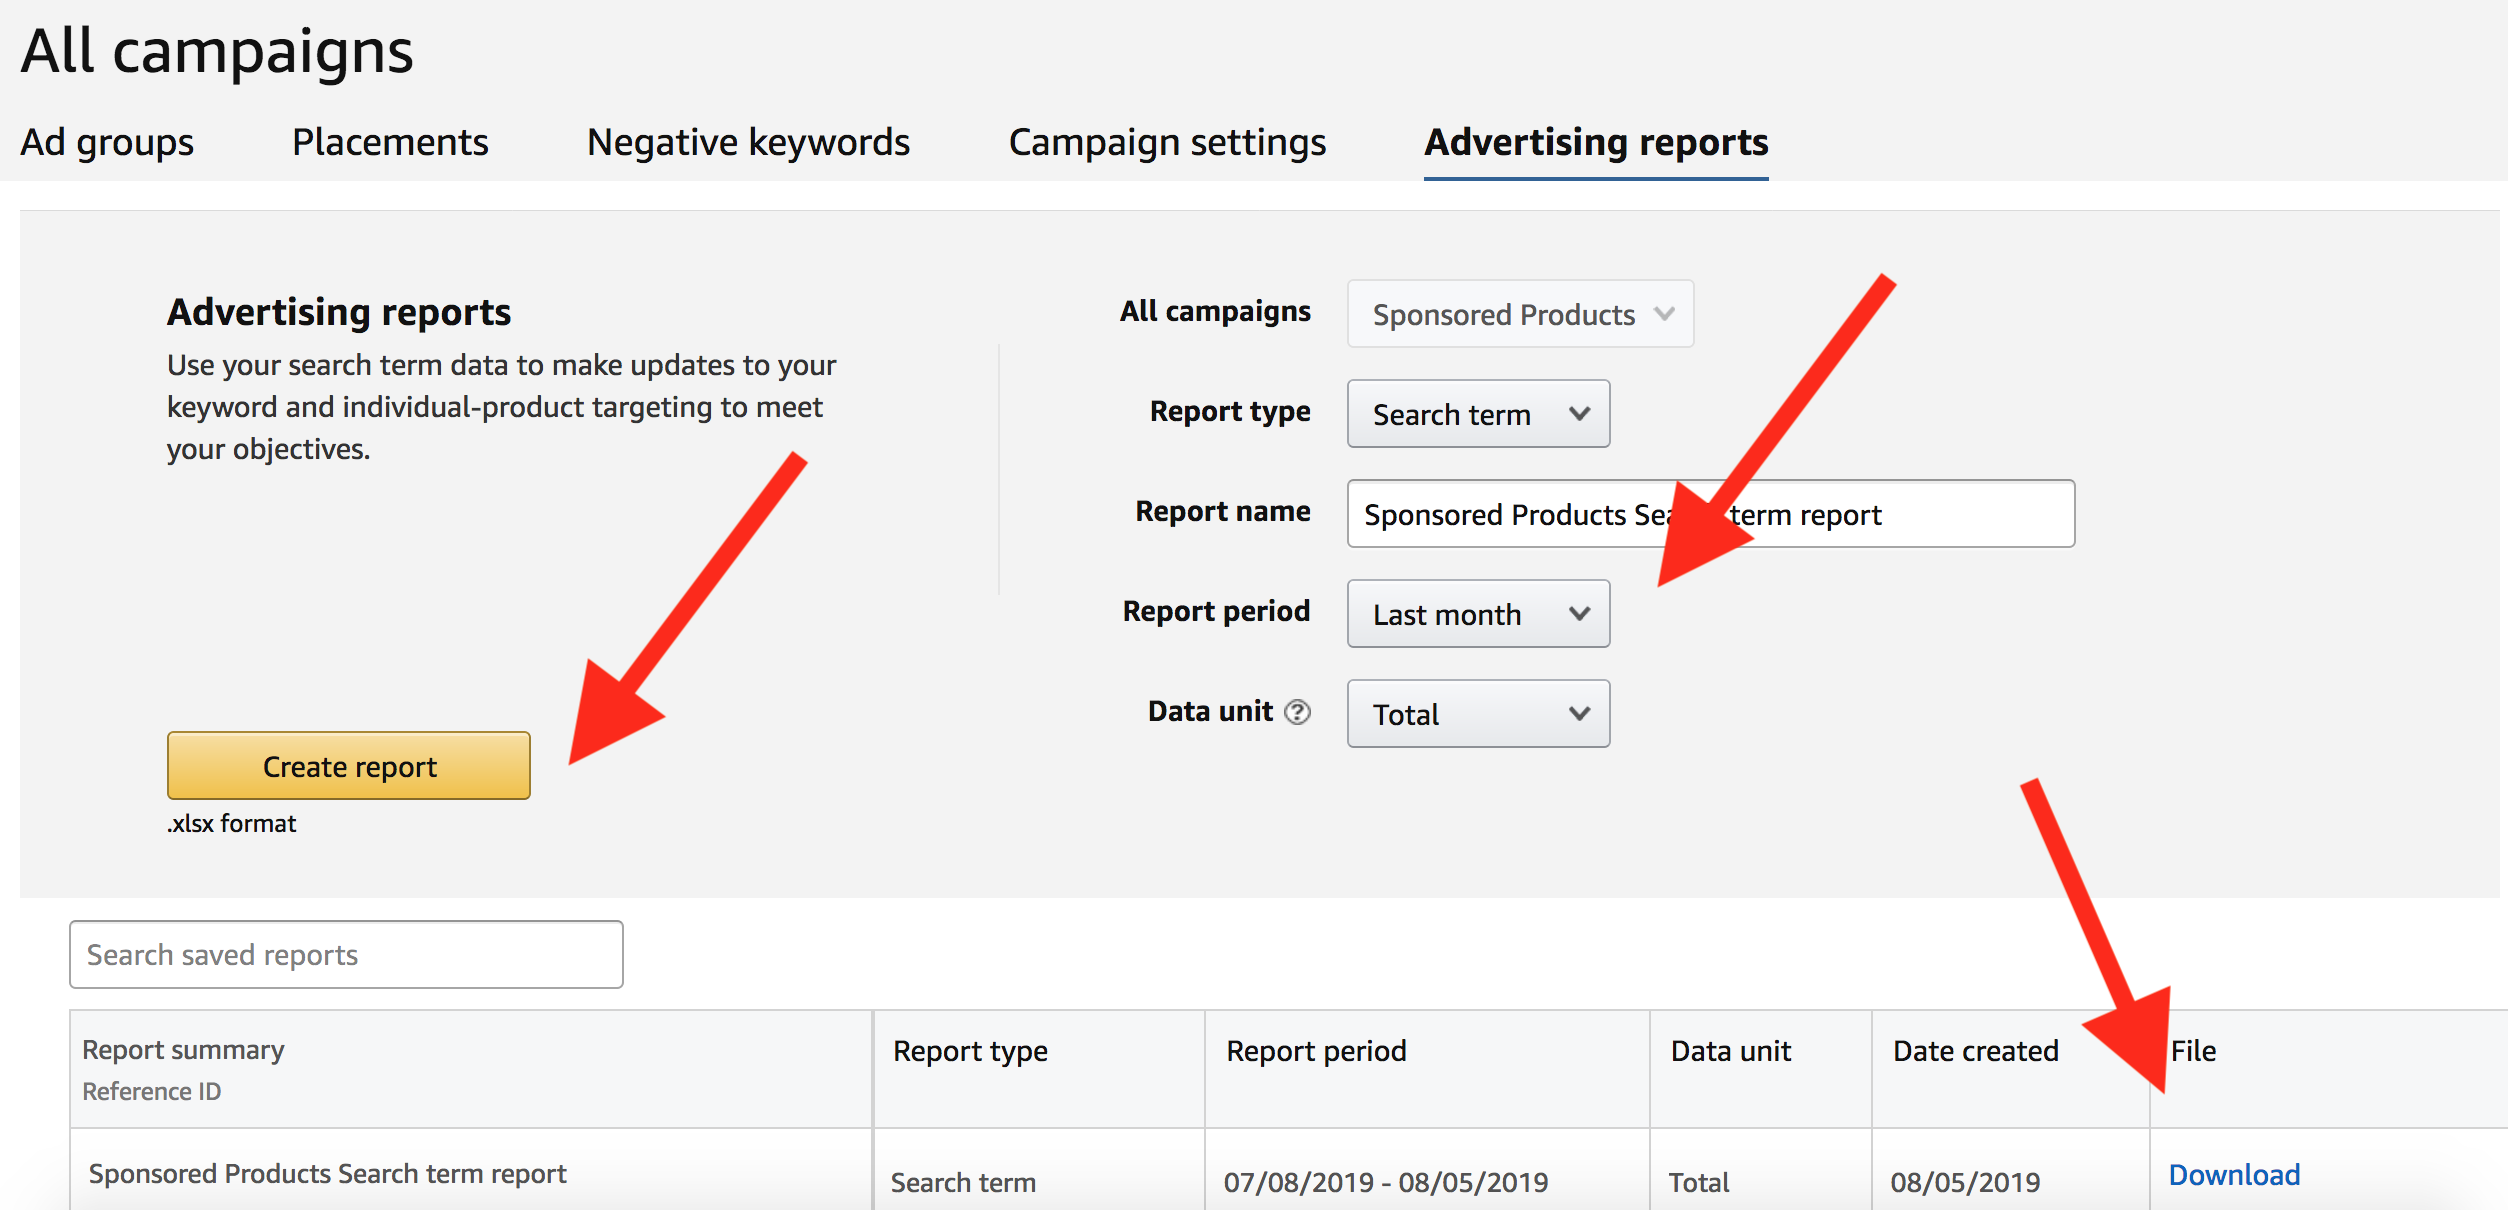 Advertisign report amazon ppc negative keywords